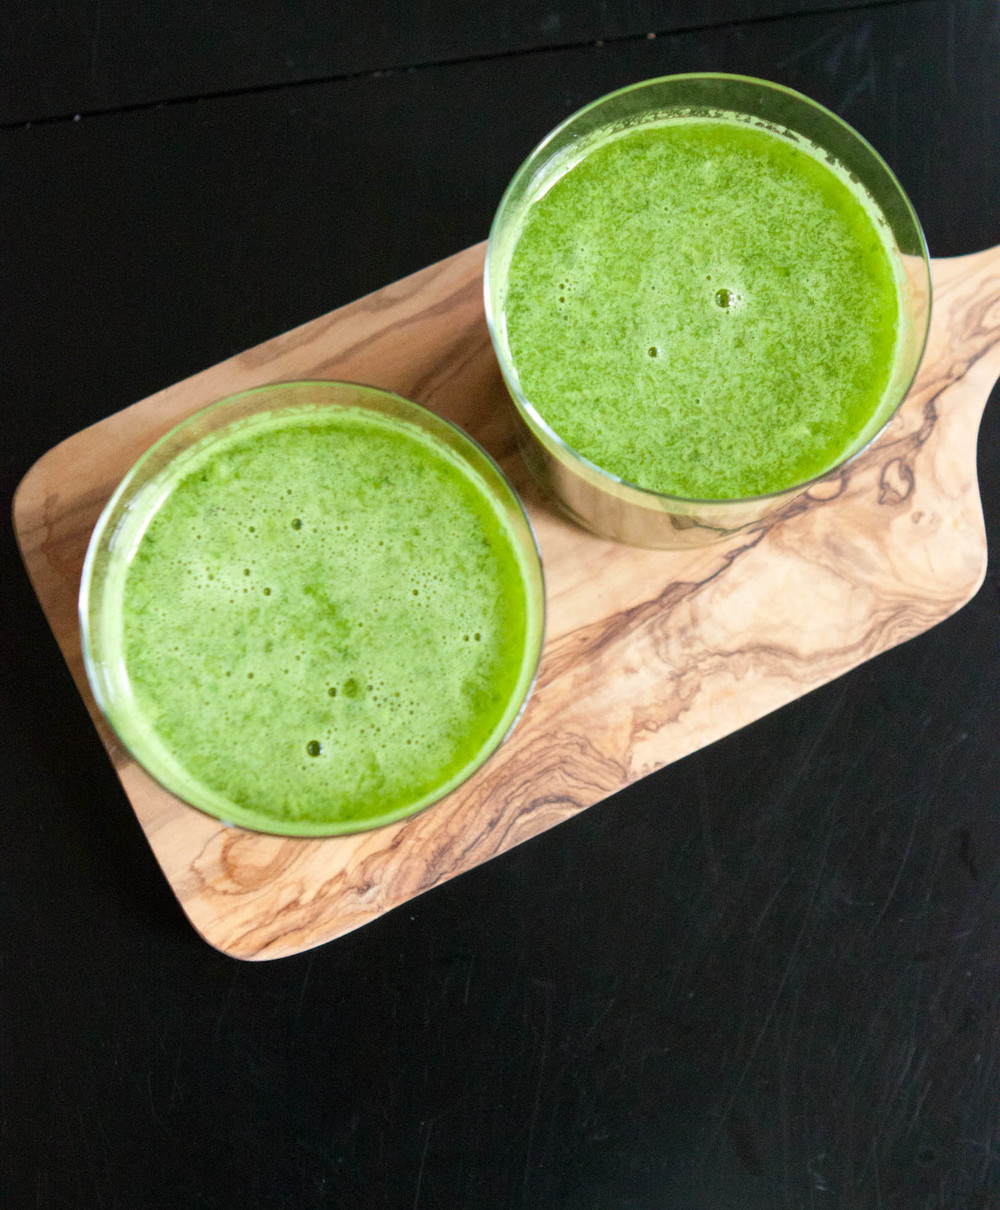 pineapple kale juice-7.jpg